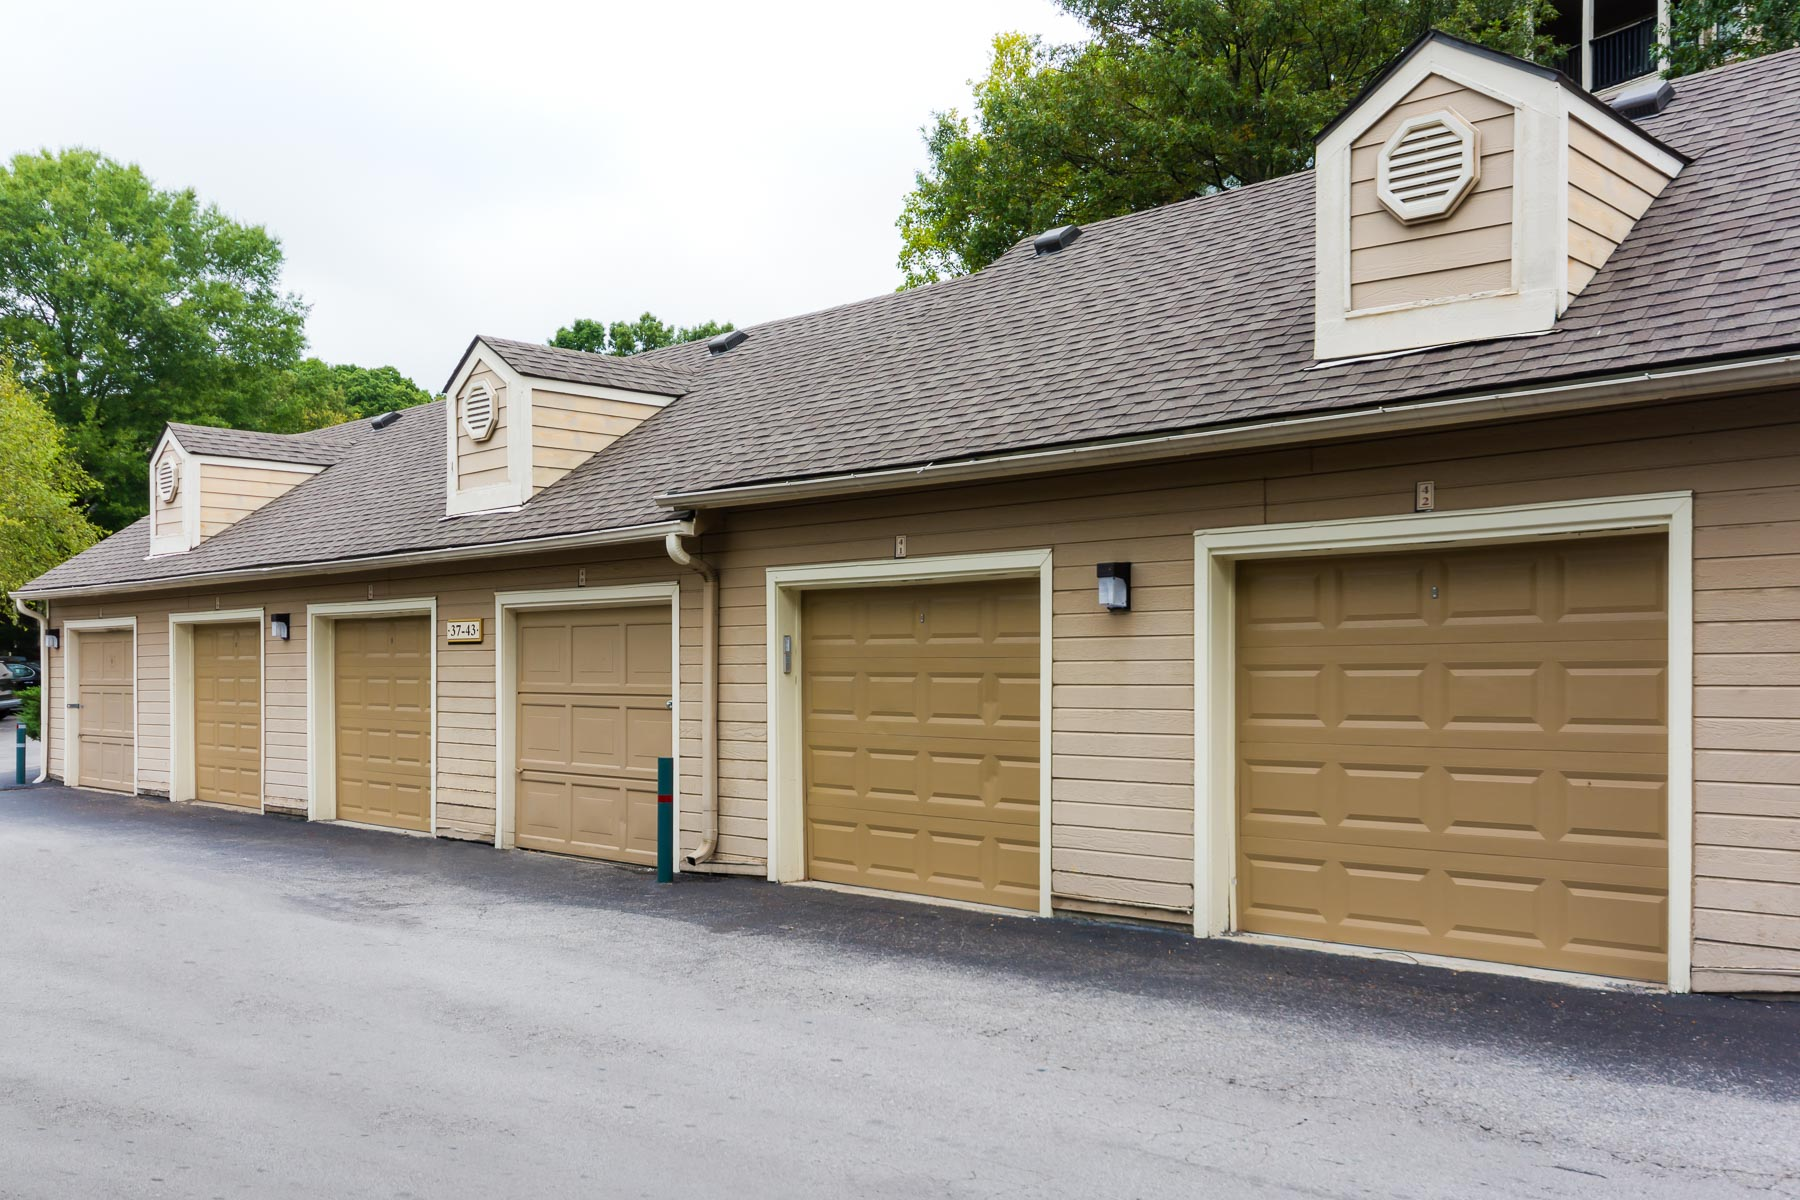 Nashboro Village | Apartments for Rent in Nashville, TN | Separate Garages